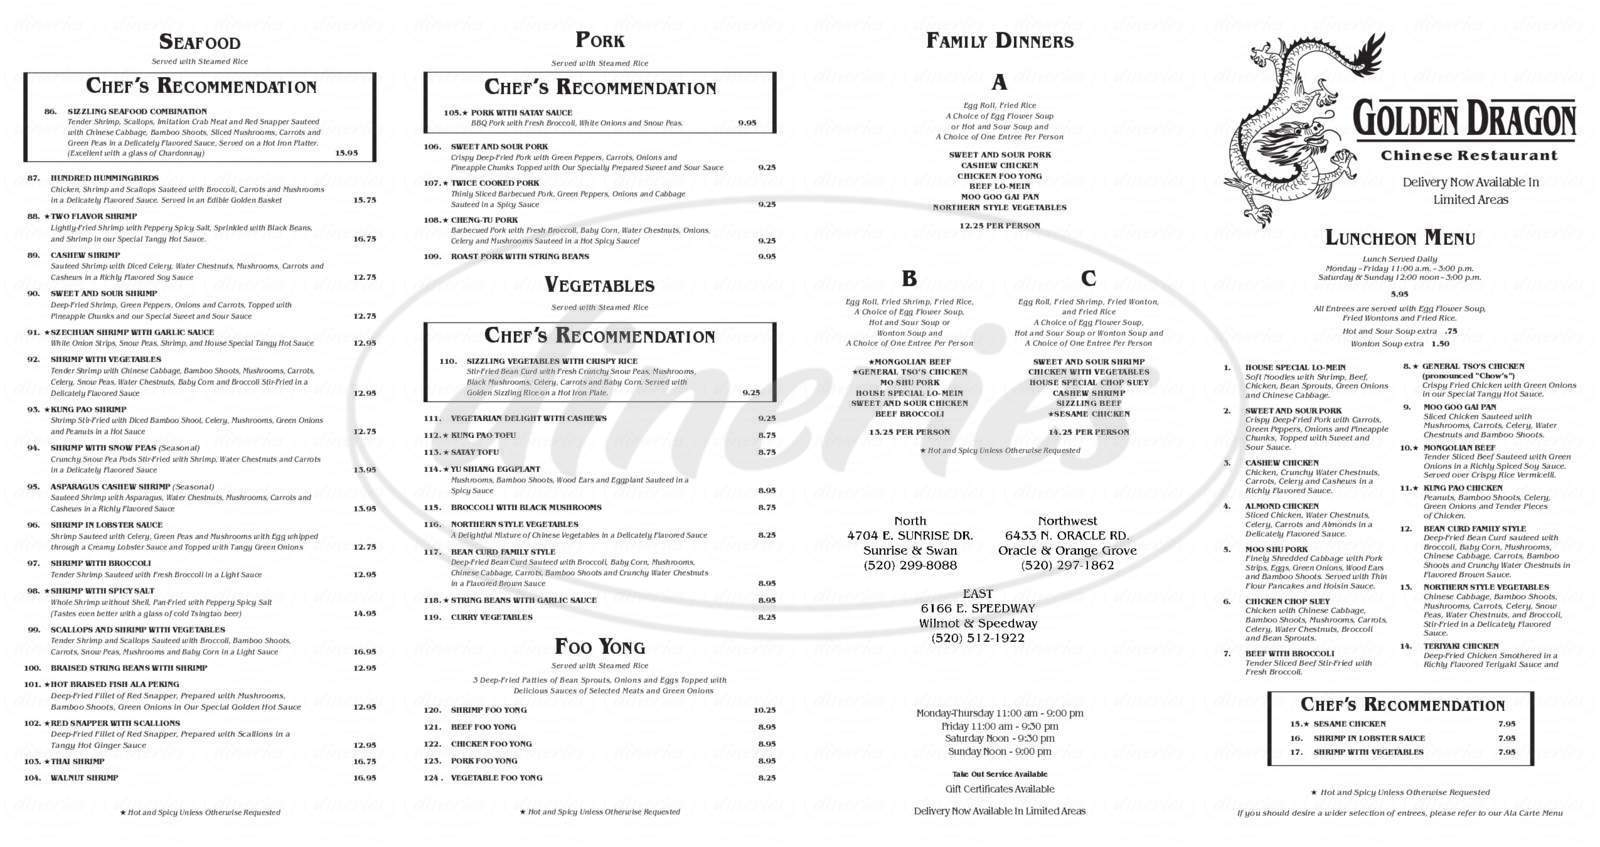 menu for Golden Dragon Restaurant the